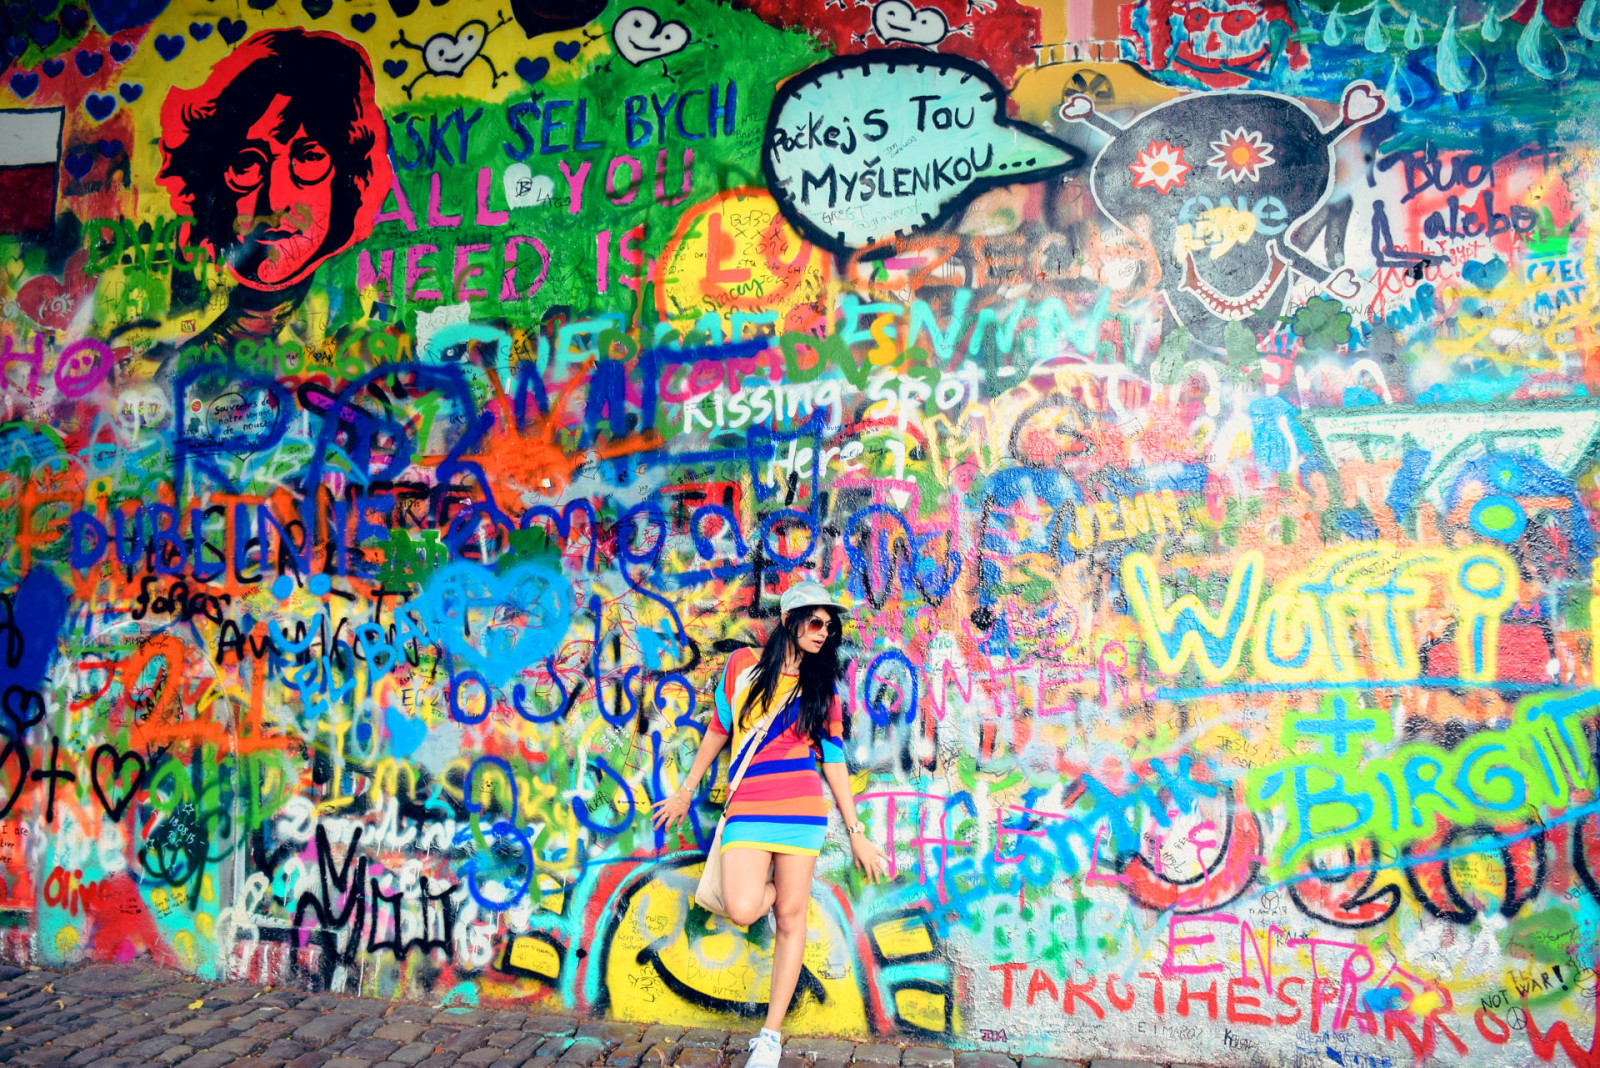 Lennon Wall and some strolling